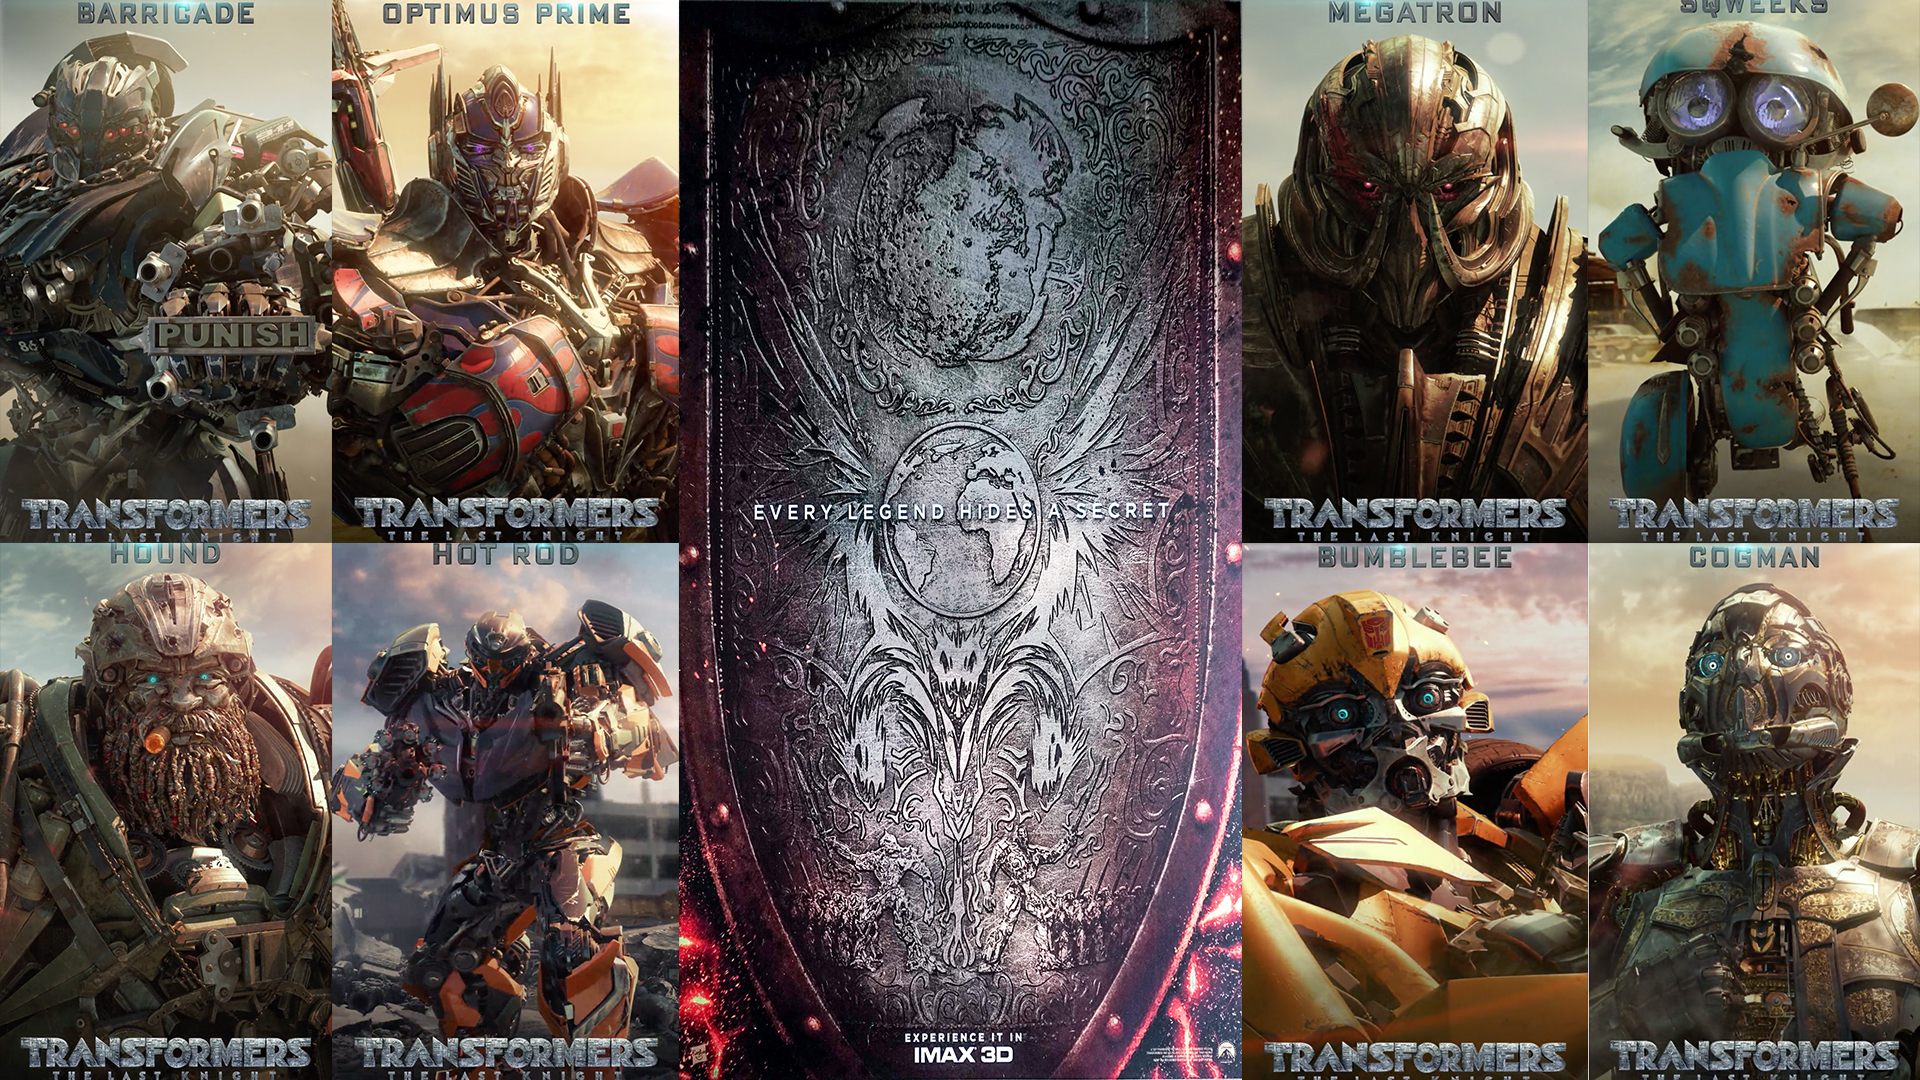 The Last Knight Wallpaper Thread | TFW2005 - The 2005 Boards Transformers 3 Bumblebee Vs Megatron